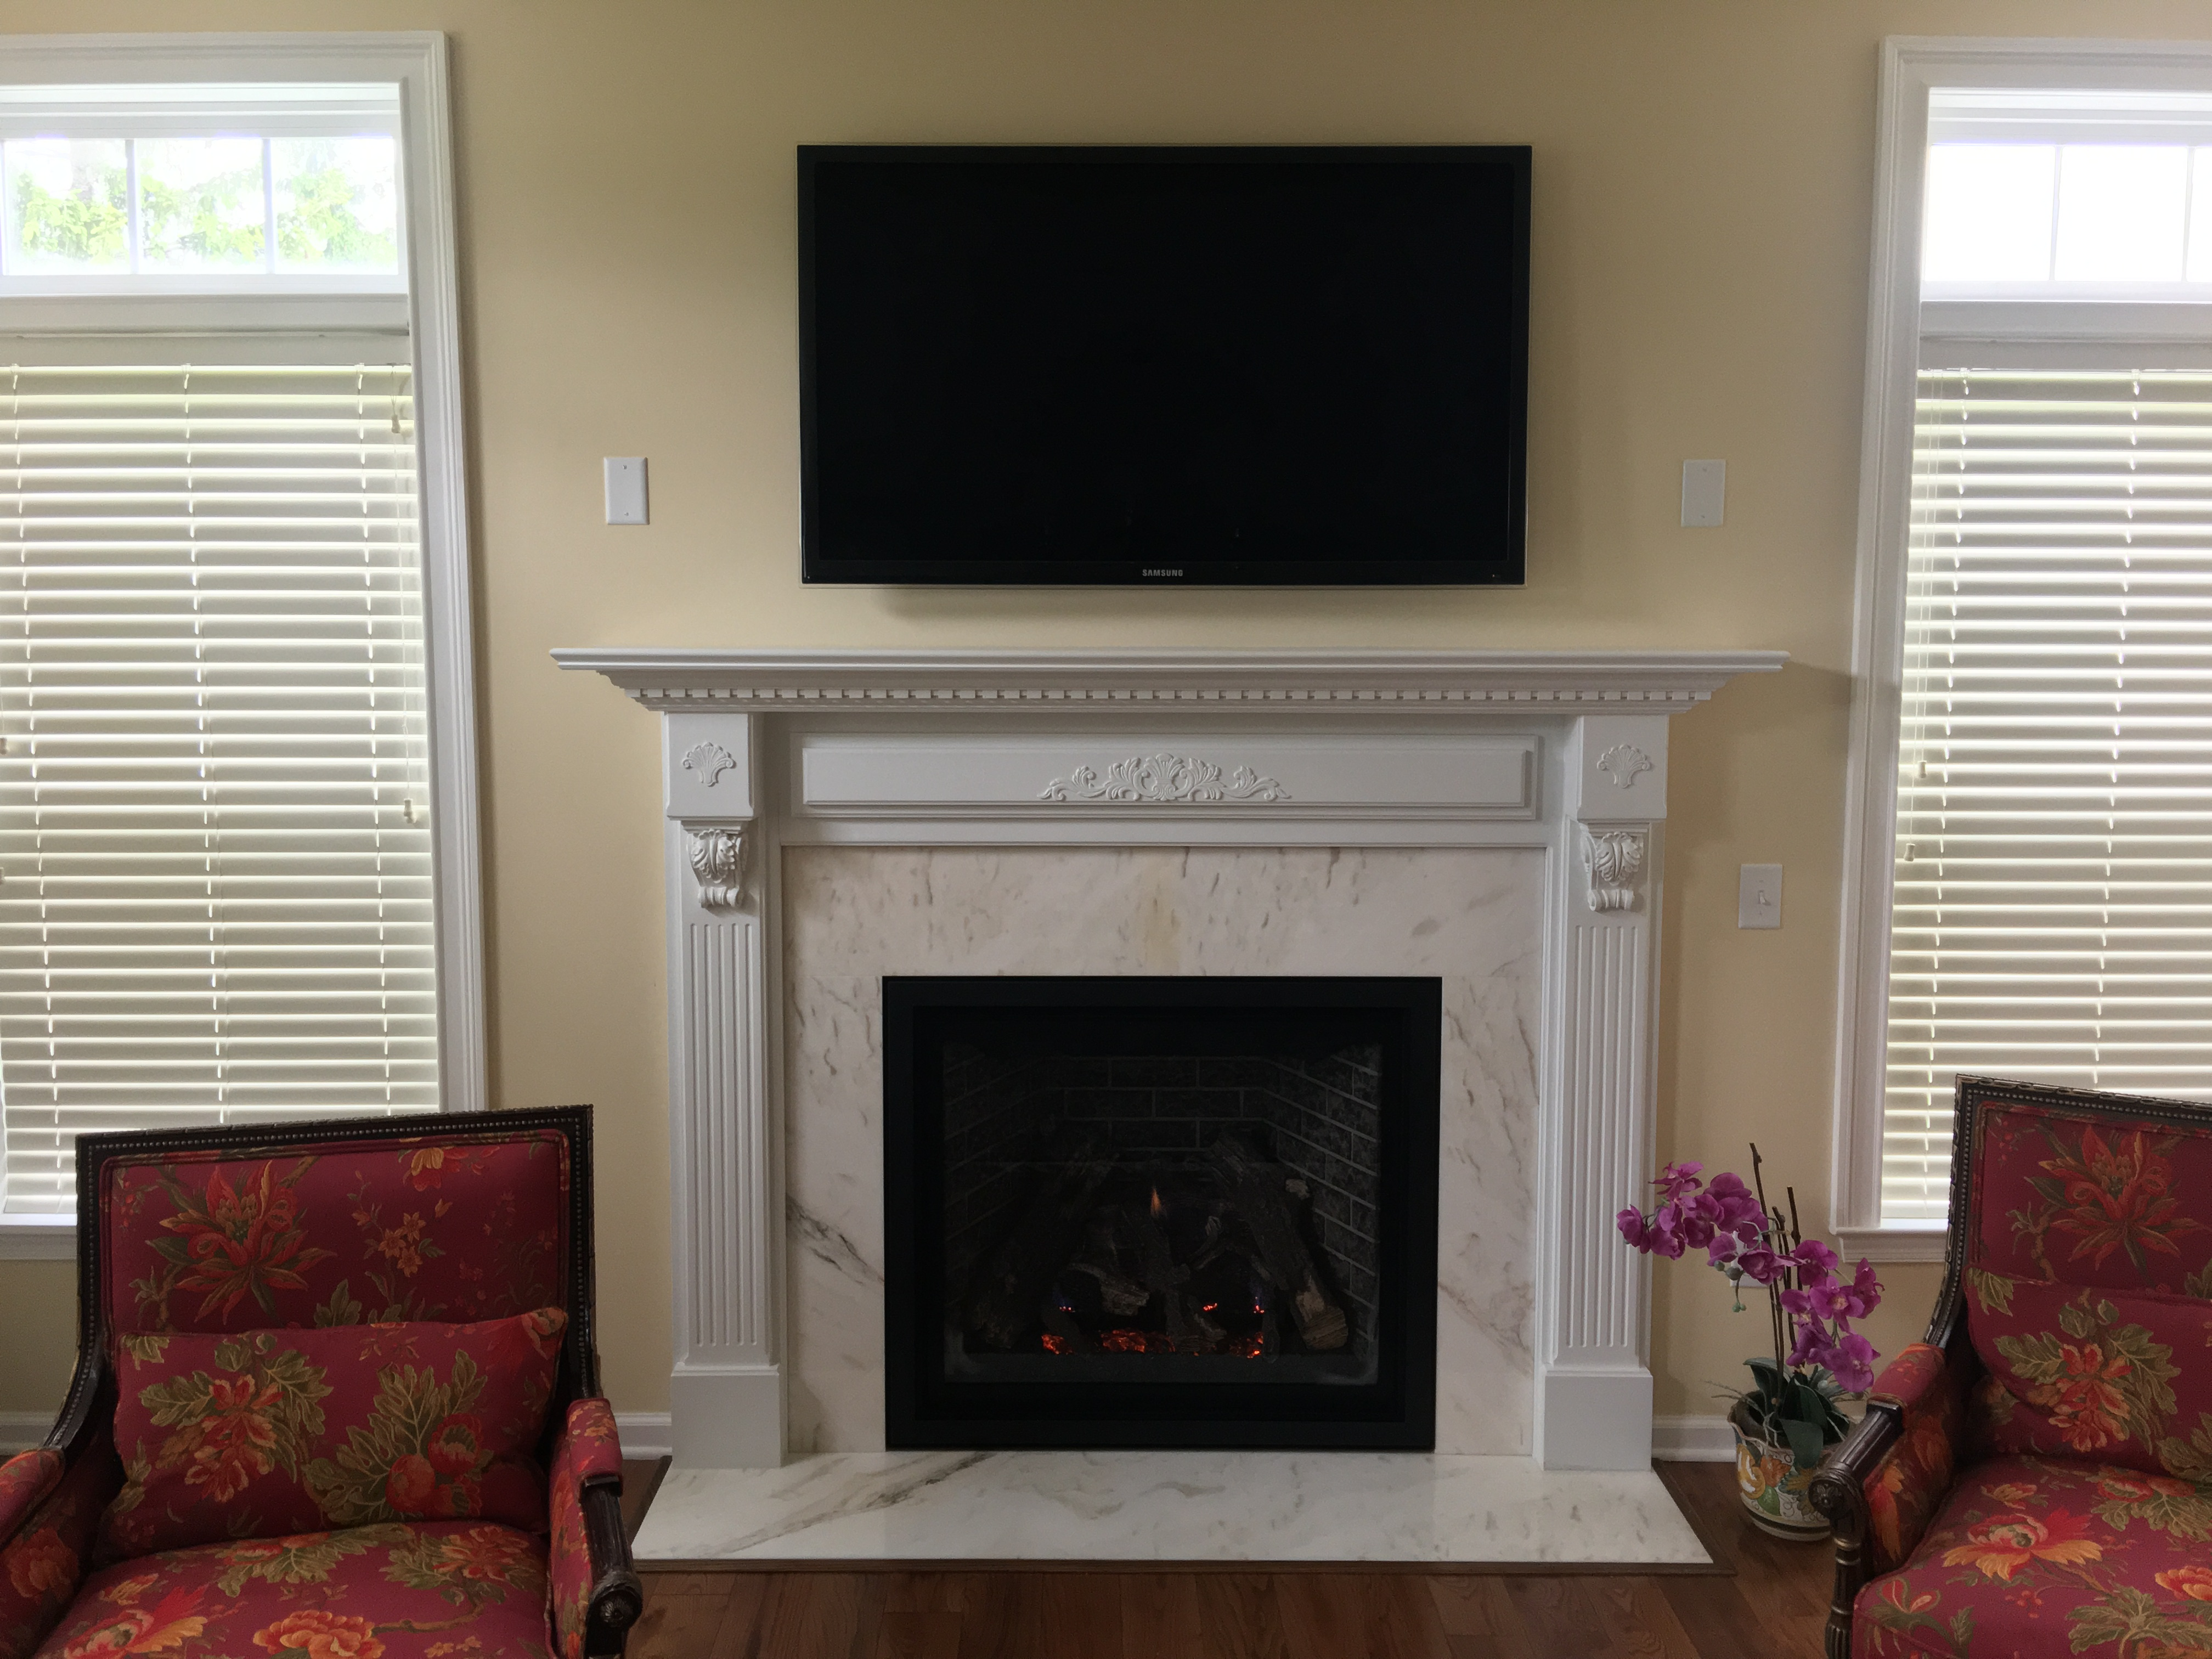 Image of a traditional Carlton 39 gas fireplace by Kozy Heat featuring traditional granite facing and mantle.